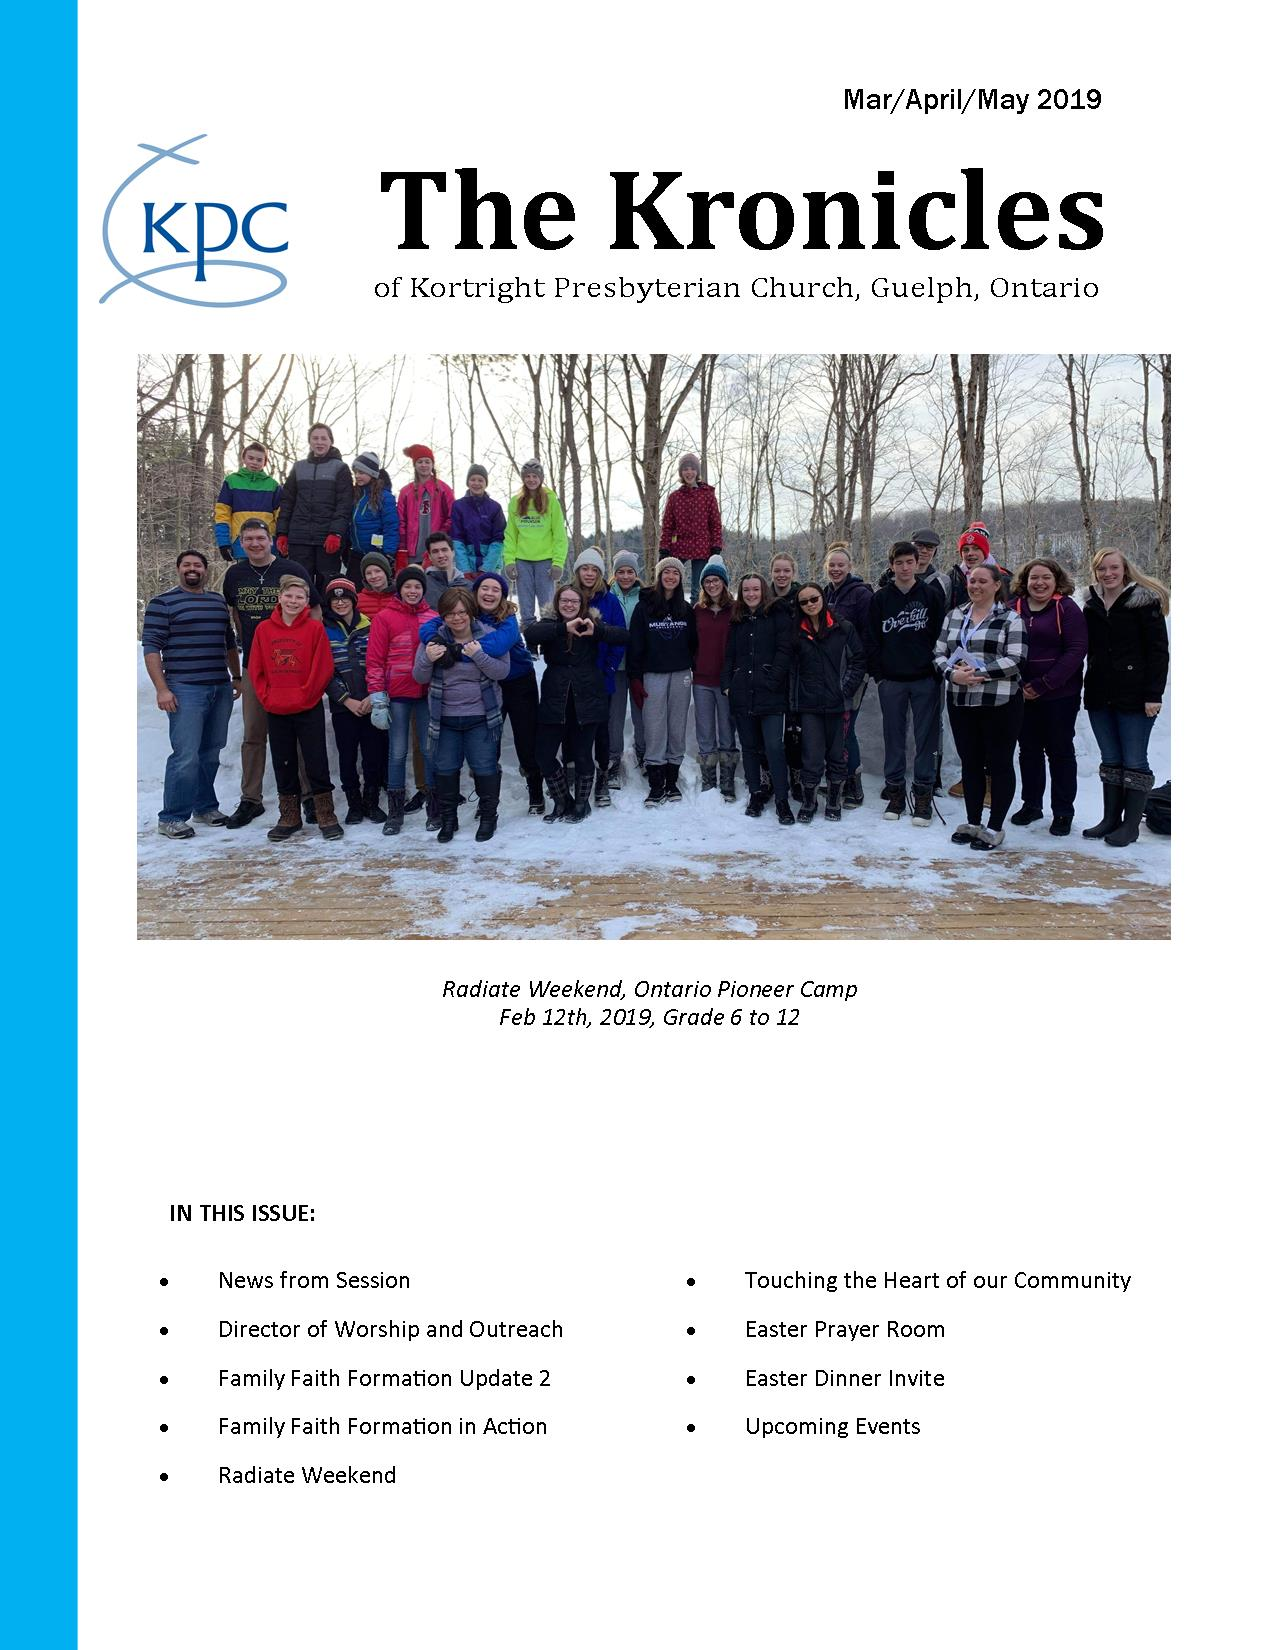 Kronicles Mar April May 2019 JEG